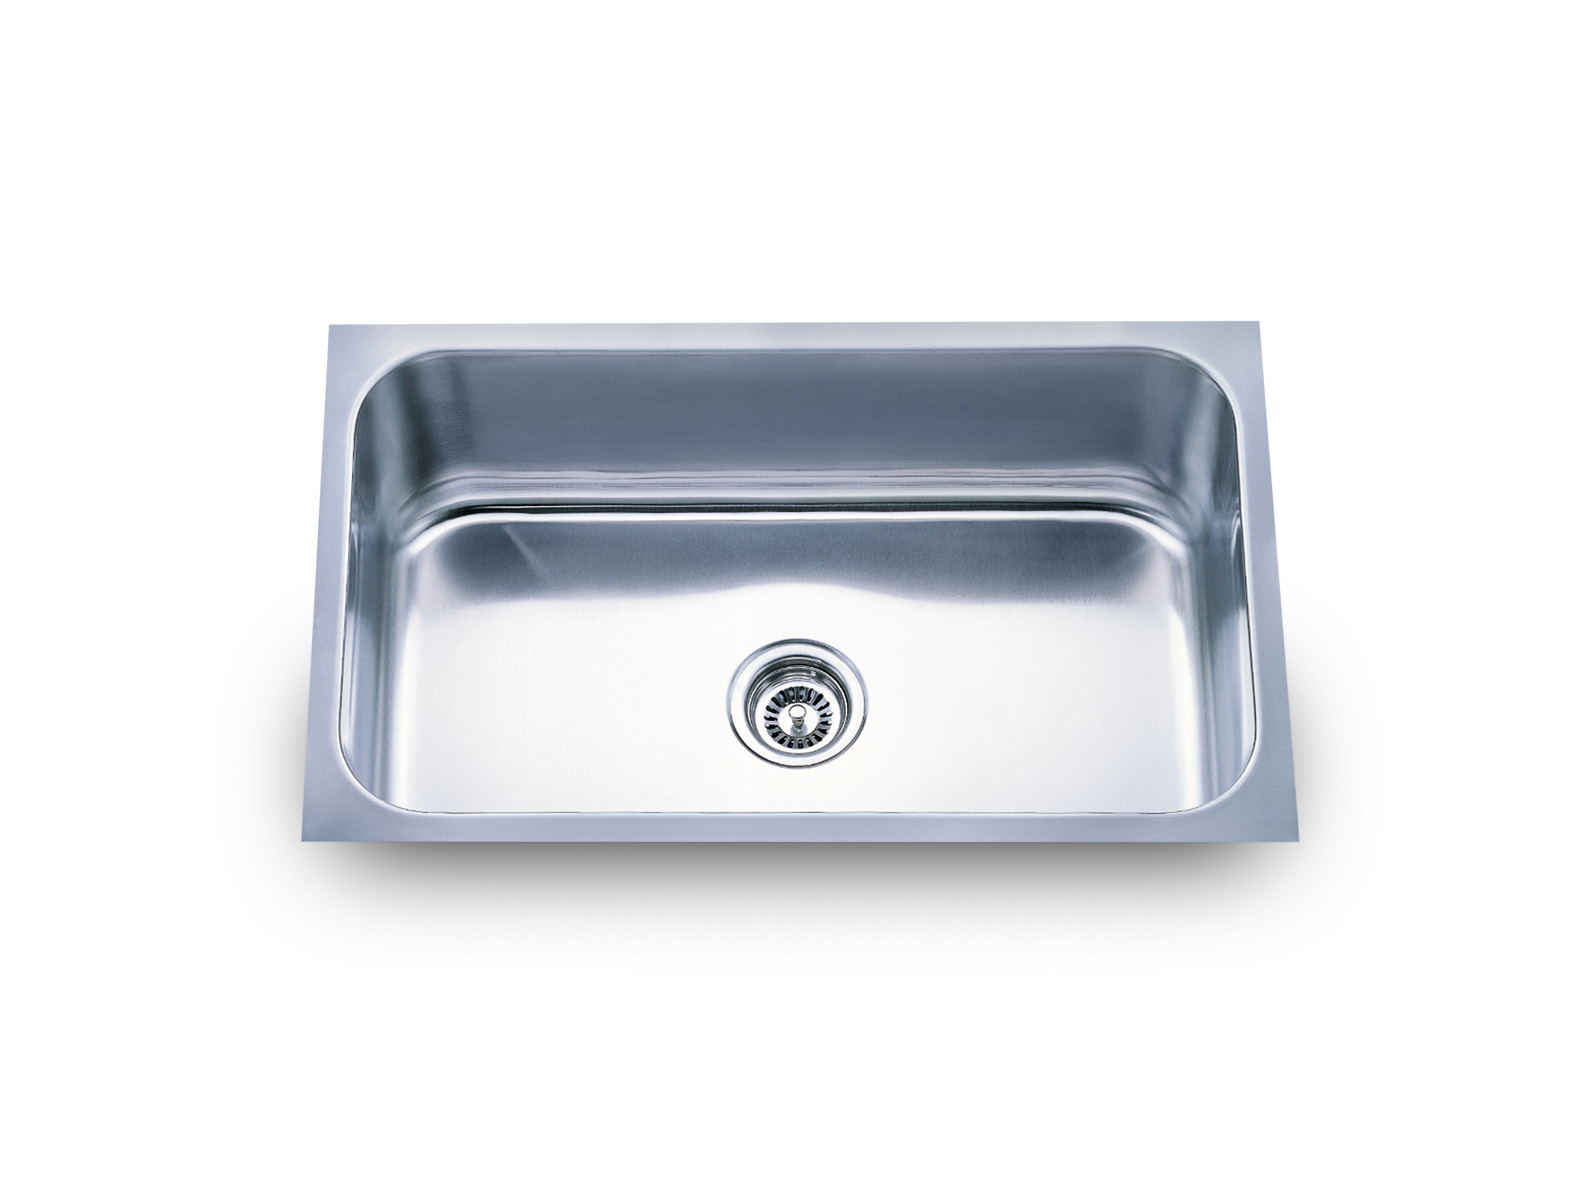 Undermount Big Single Bowl Kitchen Sink KS319 30X18